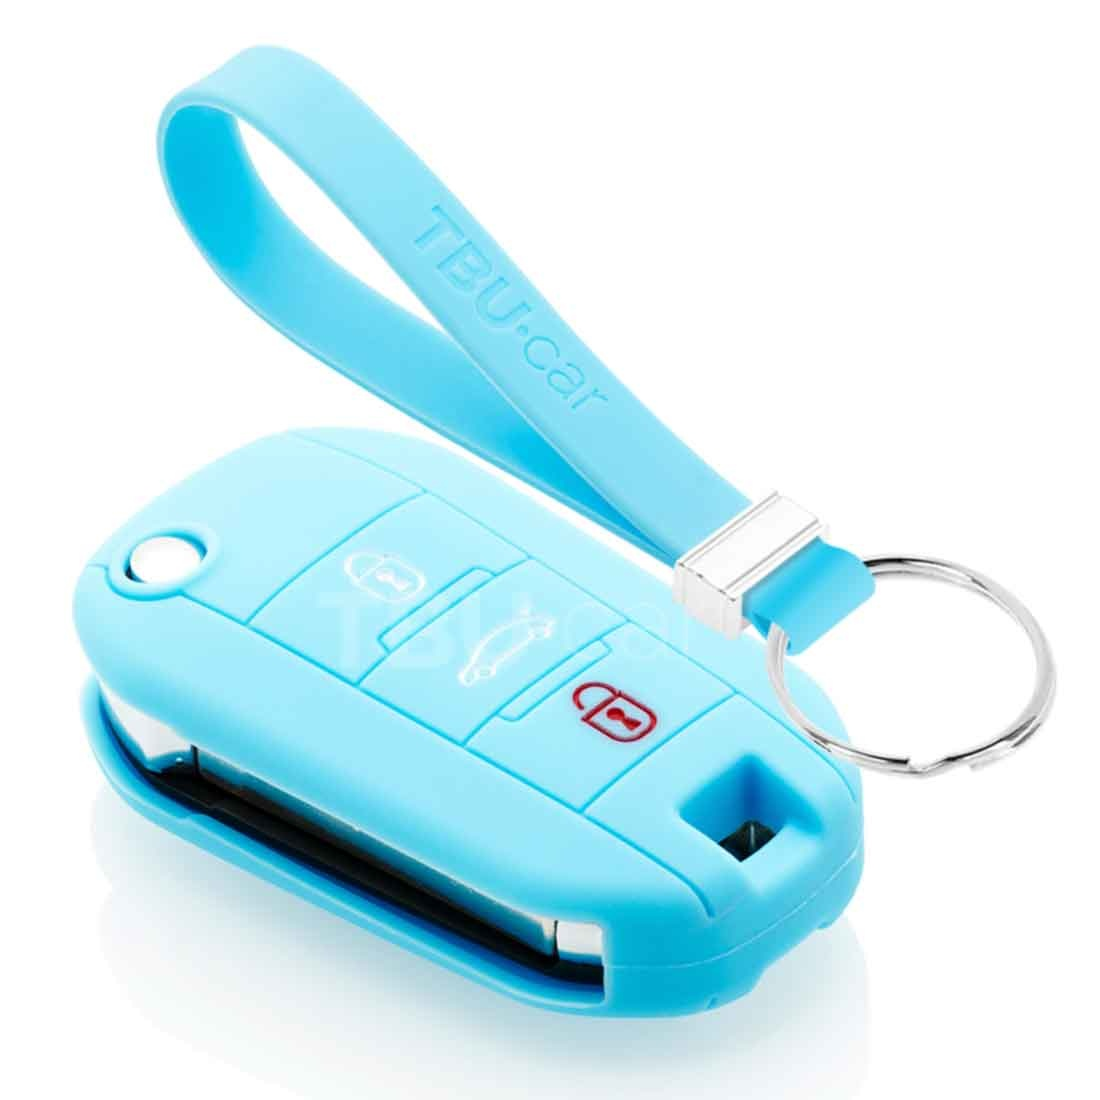 TBU car TBU car Car key cover compatible with Citroën - Silicone Protective Remote Key Shell - FOB Case Cover - Light Blue